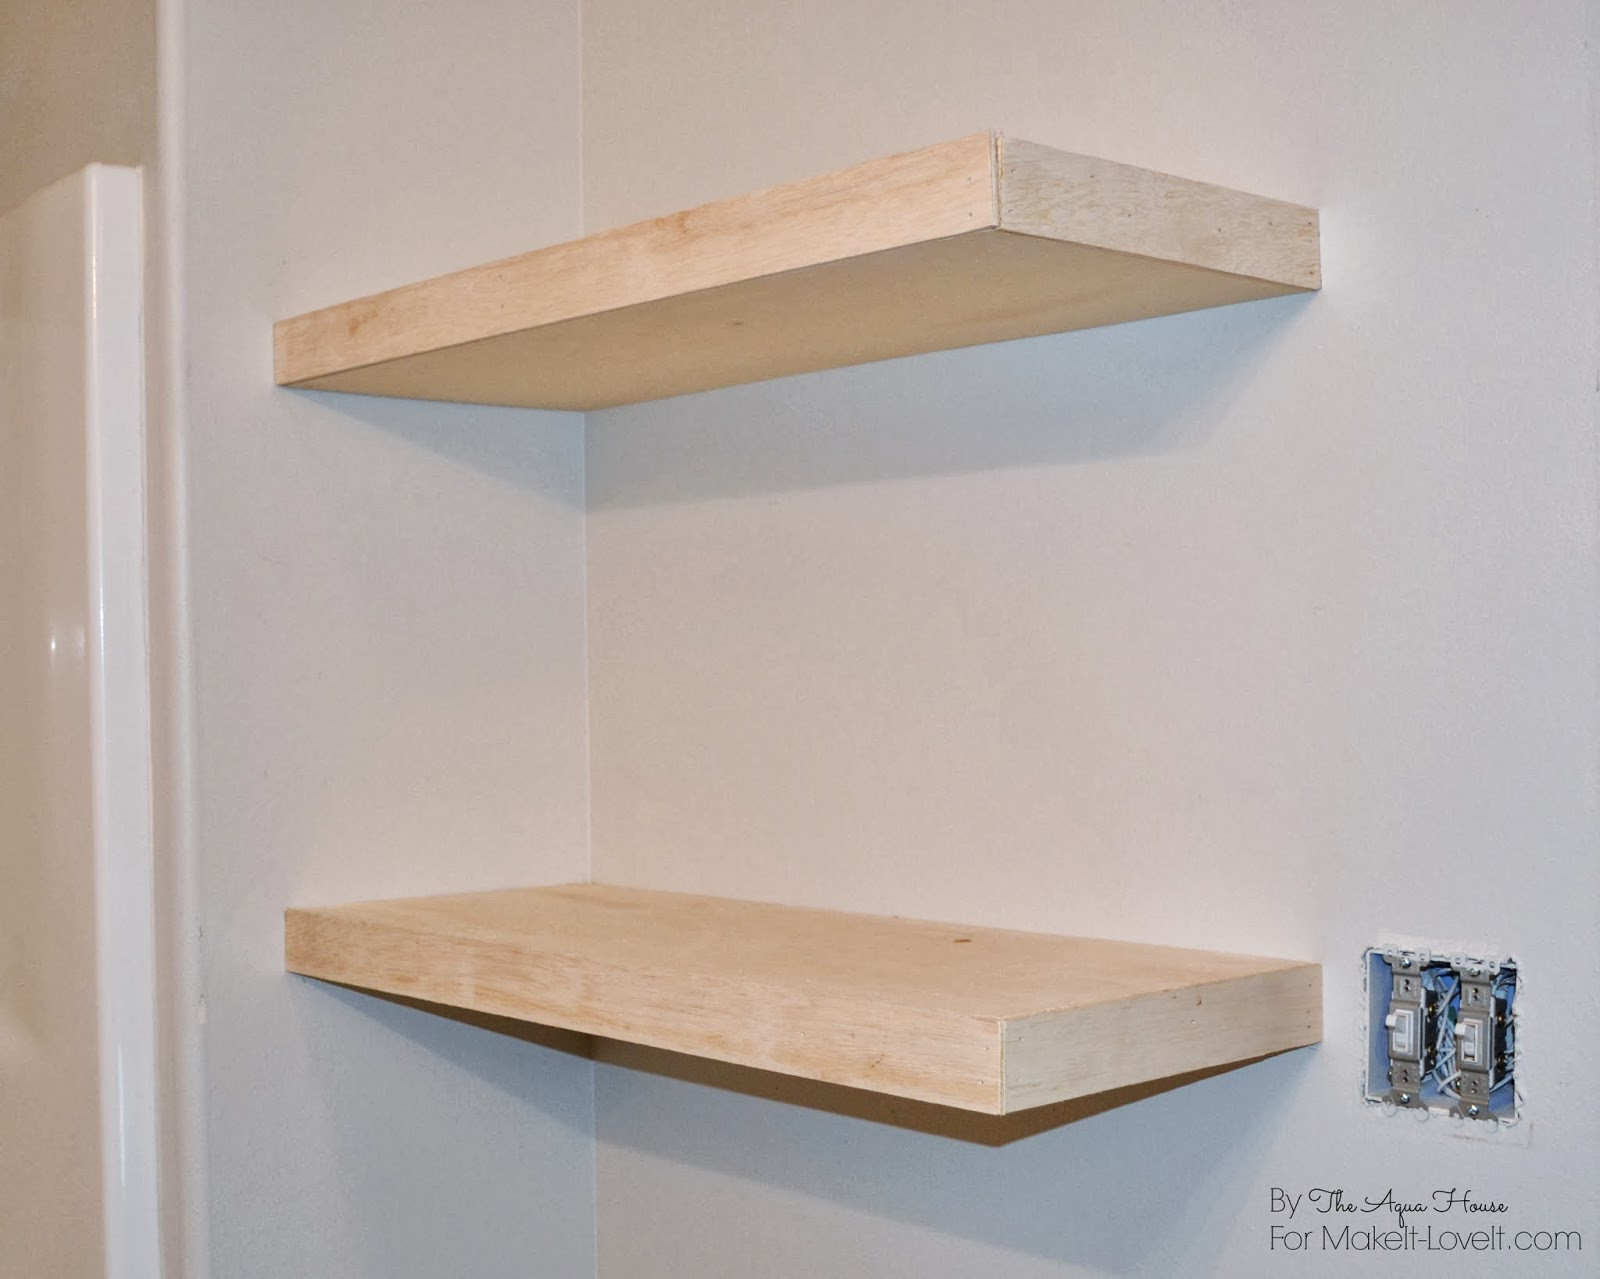 Best ideas about Floating Bookshelves DIY . Save or Pin DIY Floating Shelves a great storage solution Now.